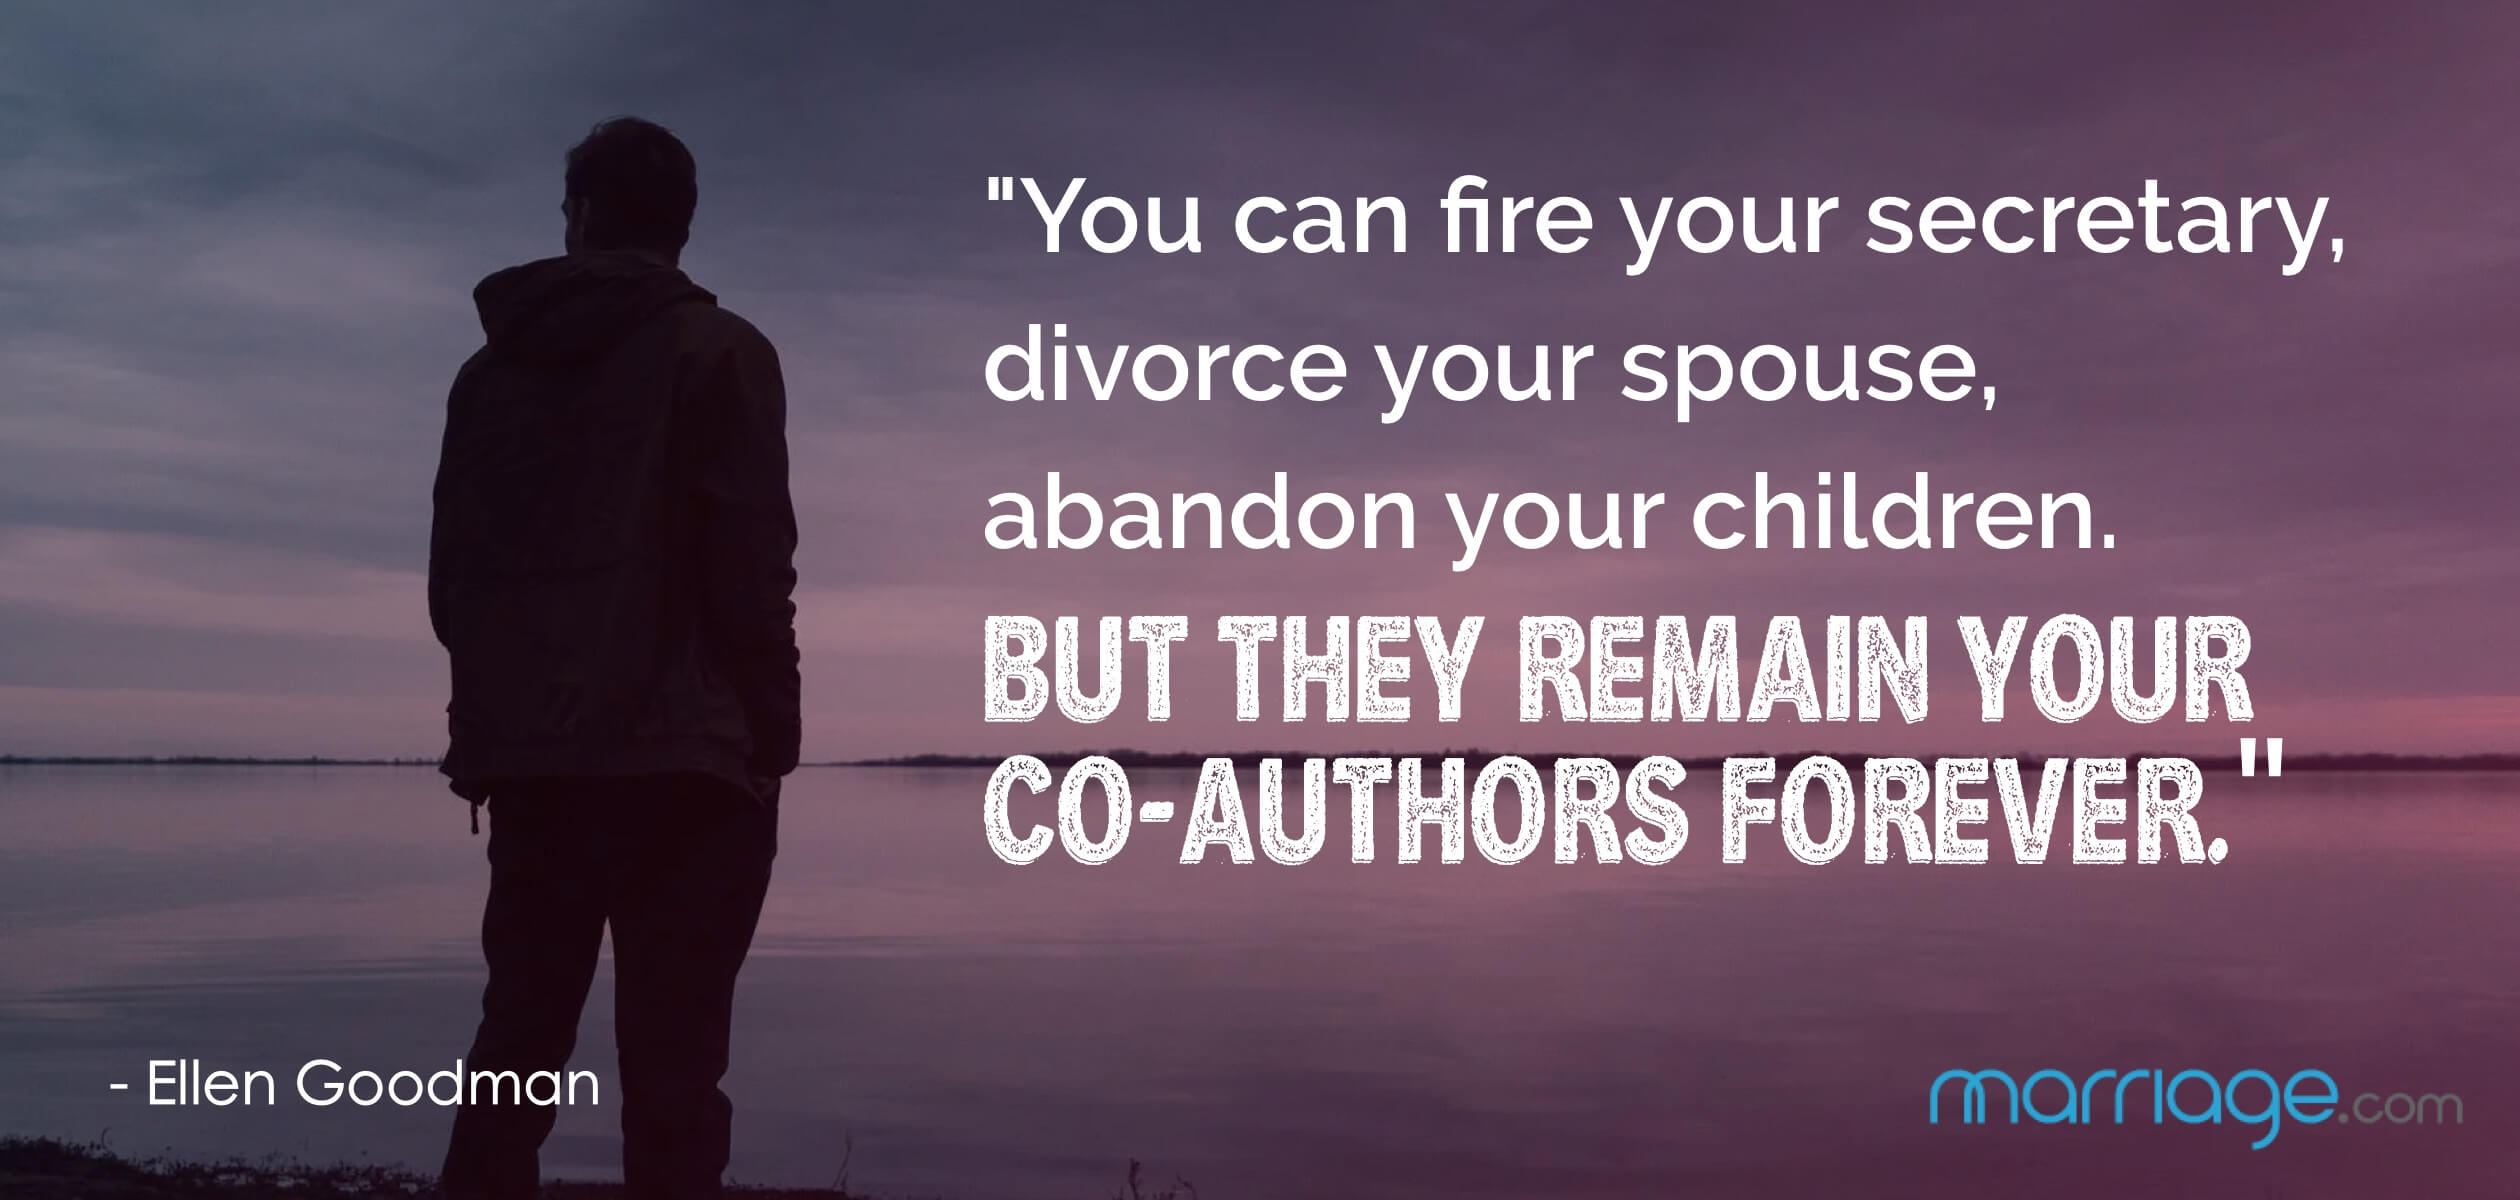 """You can fire your secretary, divorce your spouse, abandon your children. But they remain your co-authors forever.\"" - Ellen Goodman"